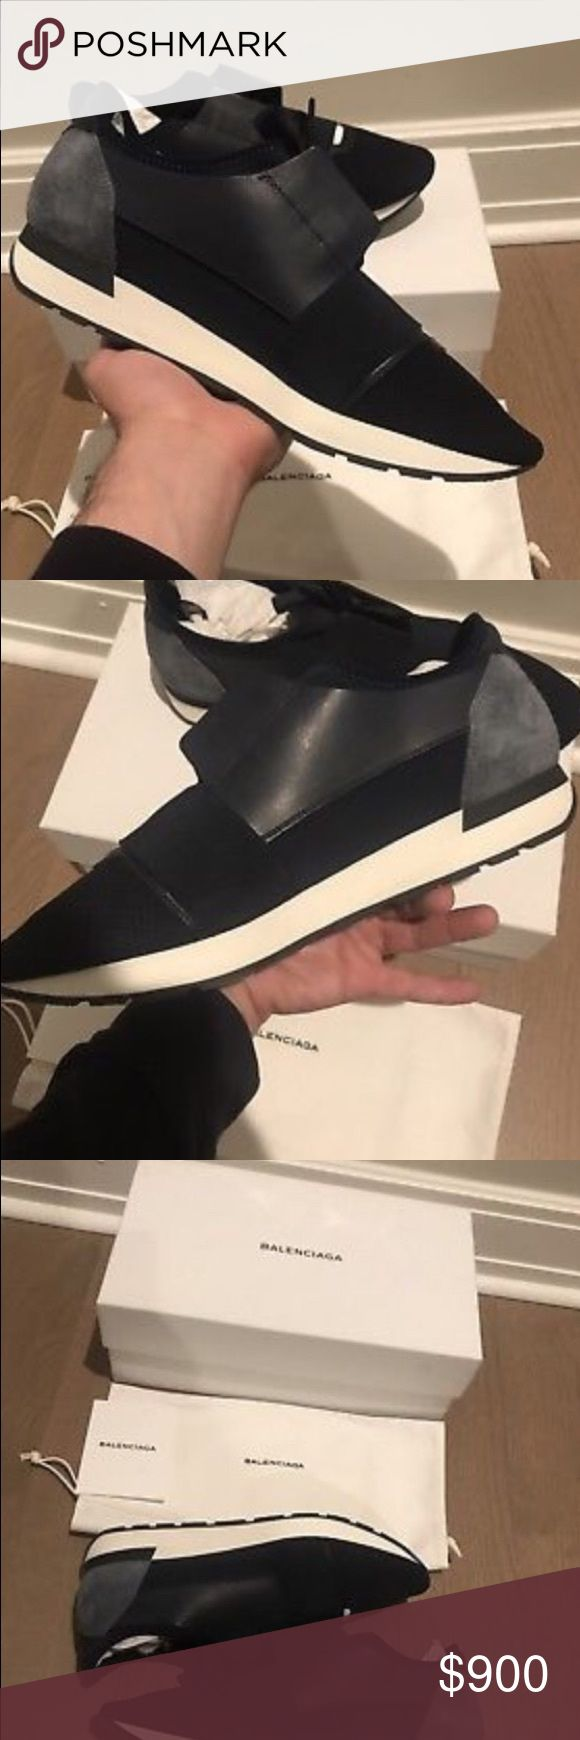 men's Balenciaga Runners Shipping only through Fed ex  payment made on here or venmo  have mutiple sizes Shoes Sneakers